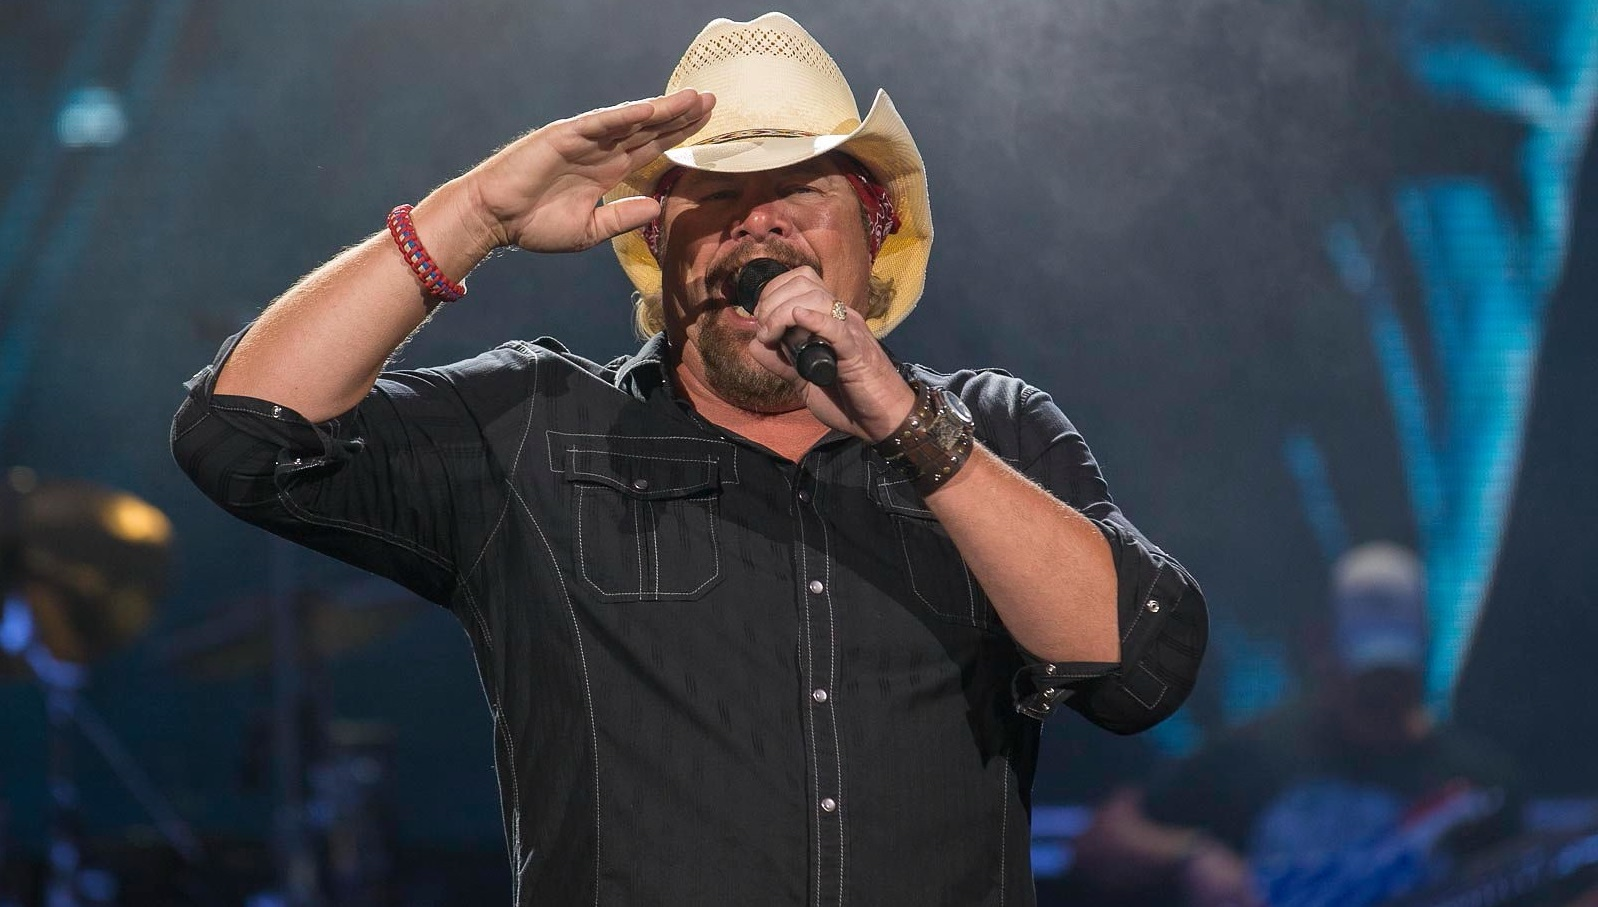 Toby Keith, the 'King of Country,' performed Saturday night in Darien Lake. (Don Nieman/Special to The News)